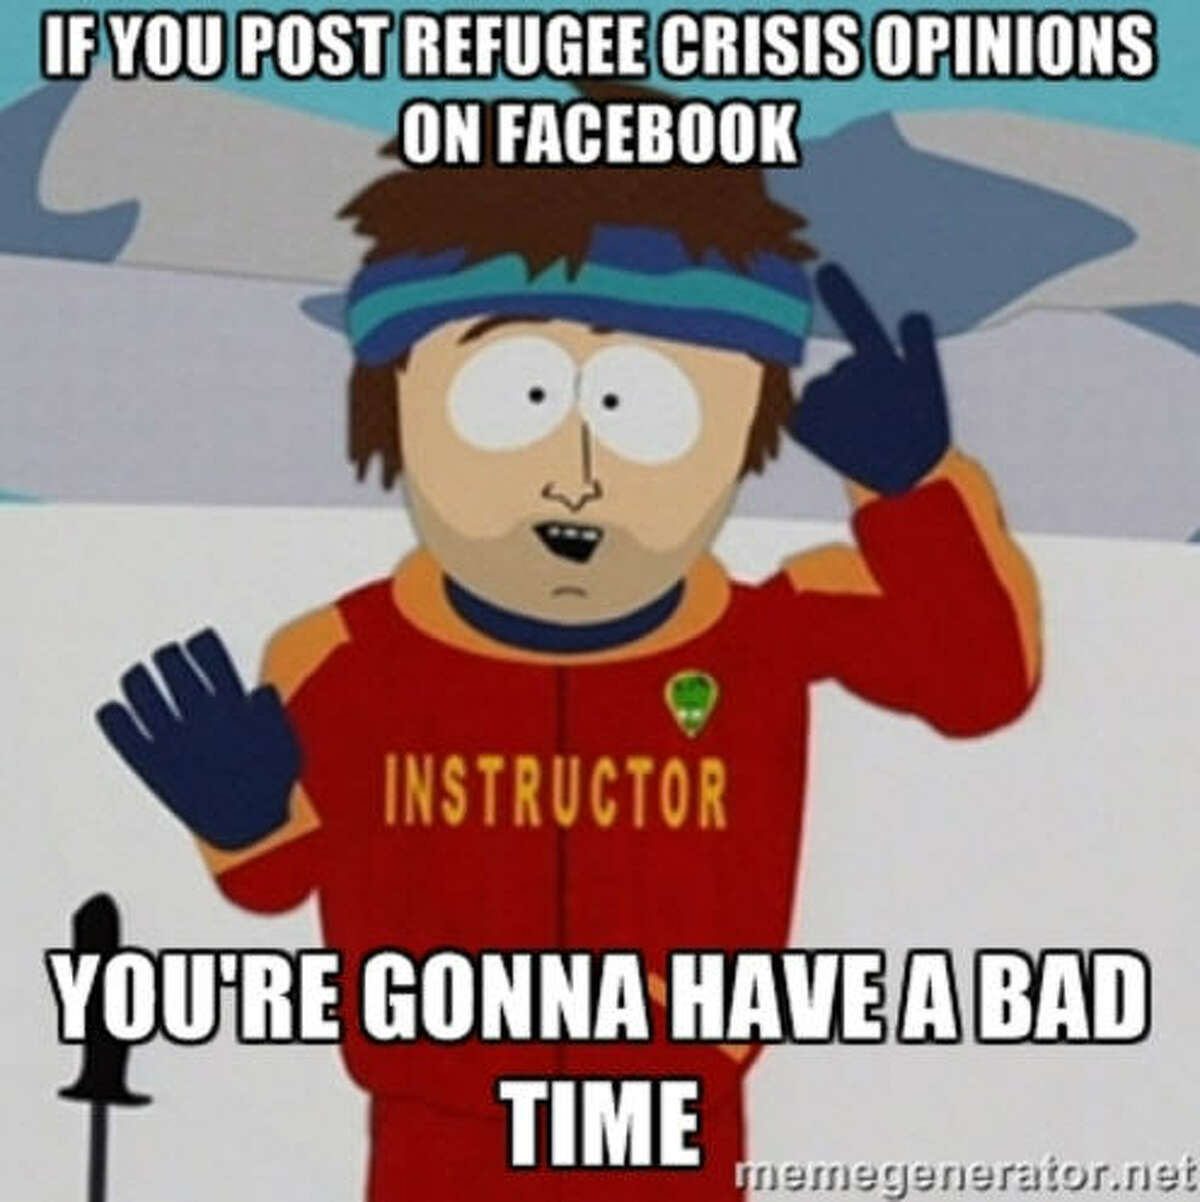 Wise words. This is among the many hot topics of the year.With thousands of refugees fleeing war-torn countries, other nations are left with the debate to allow the refugees into their countries or not. Many are fearful of terror attacks on their homeland. Source: Meme Generator